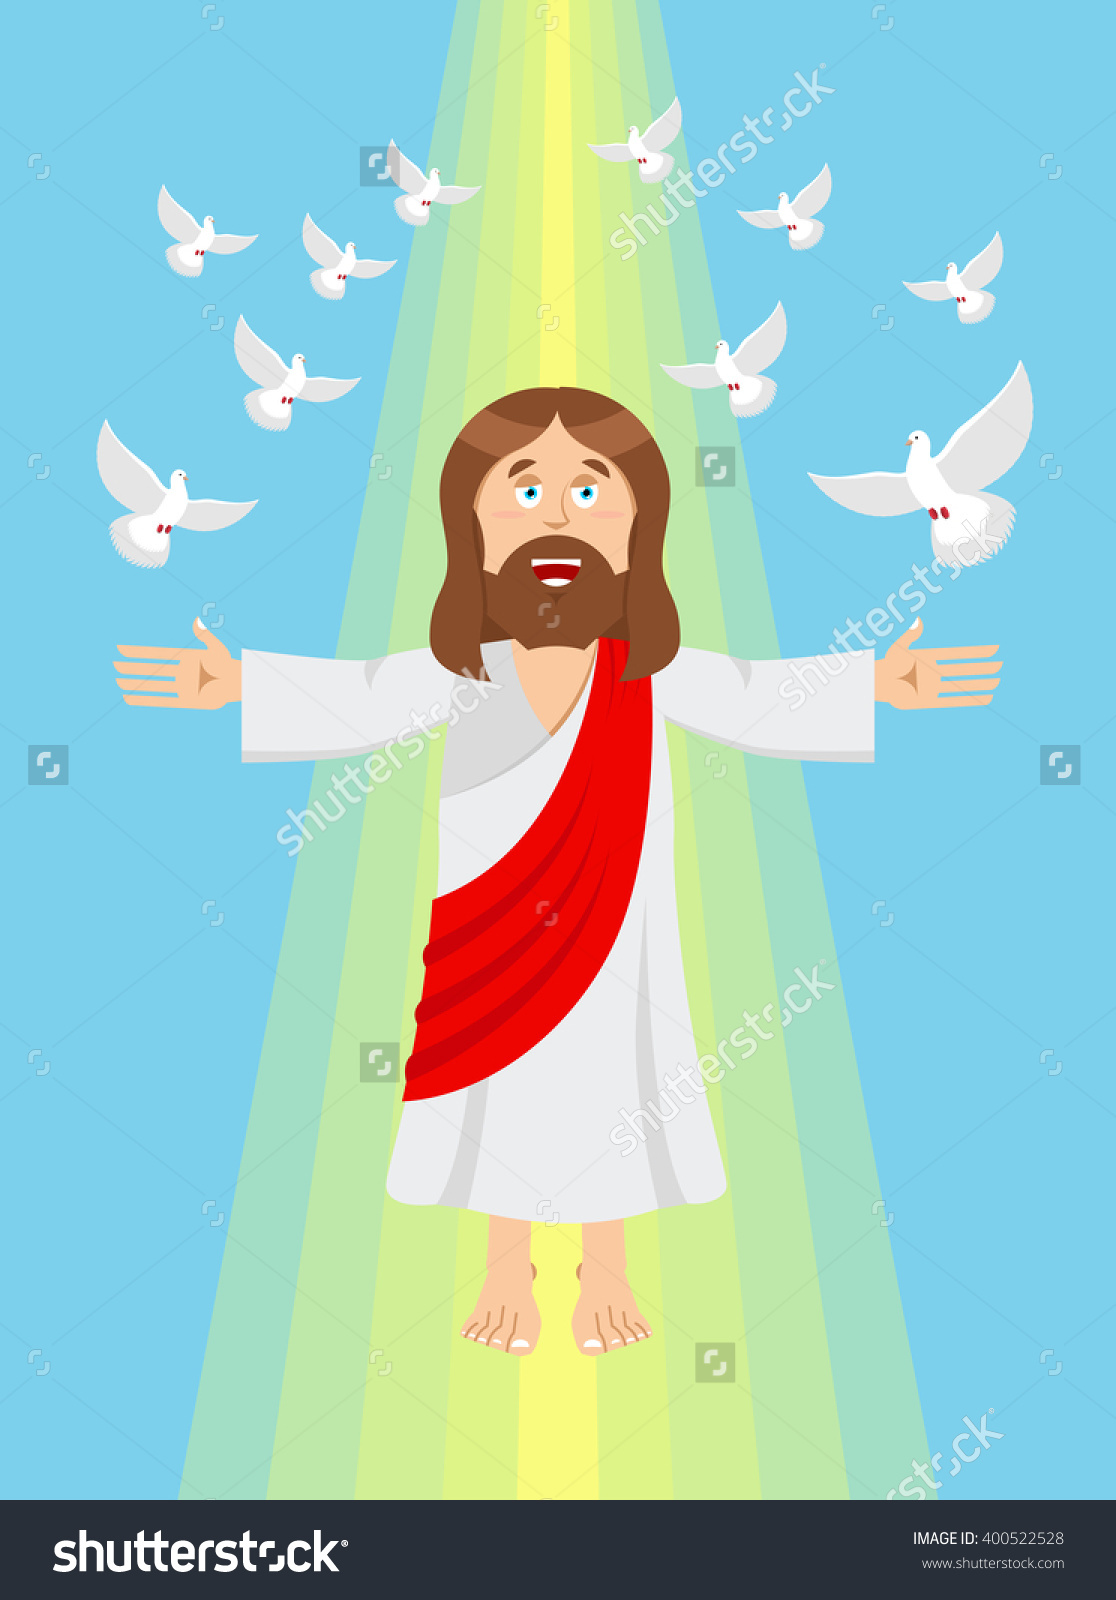 Jesus In Heaven Clip Art Pictures to Pin on Pinterest.